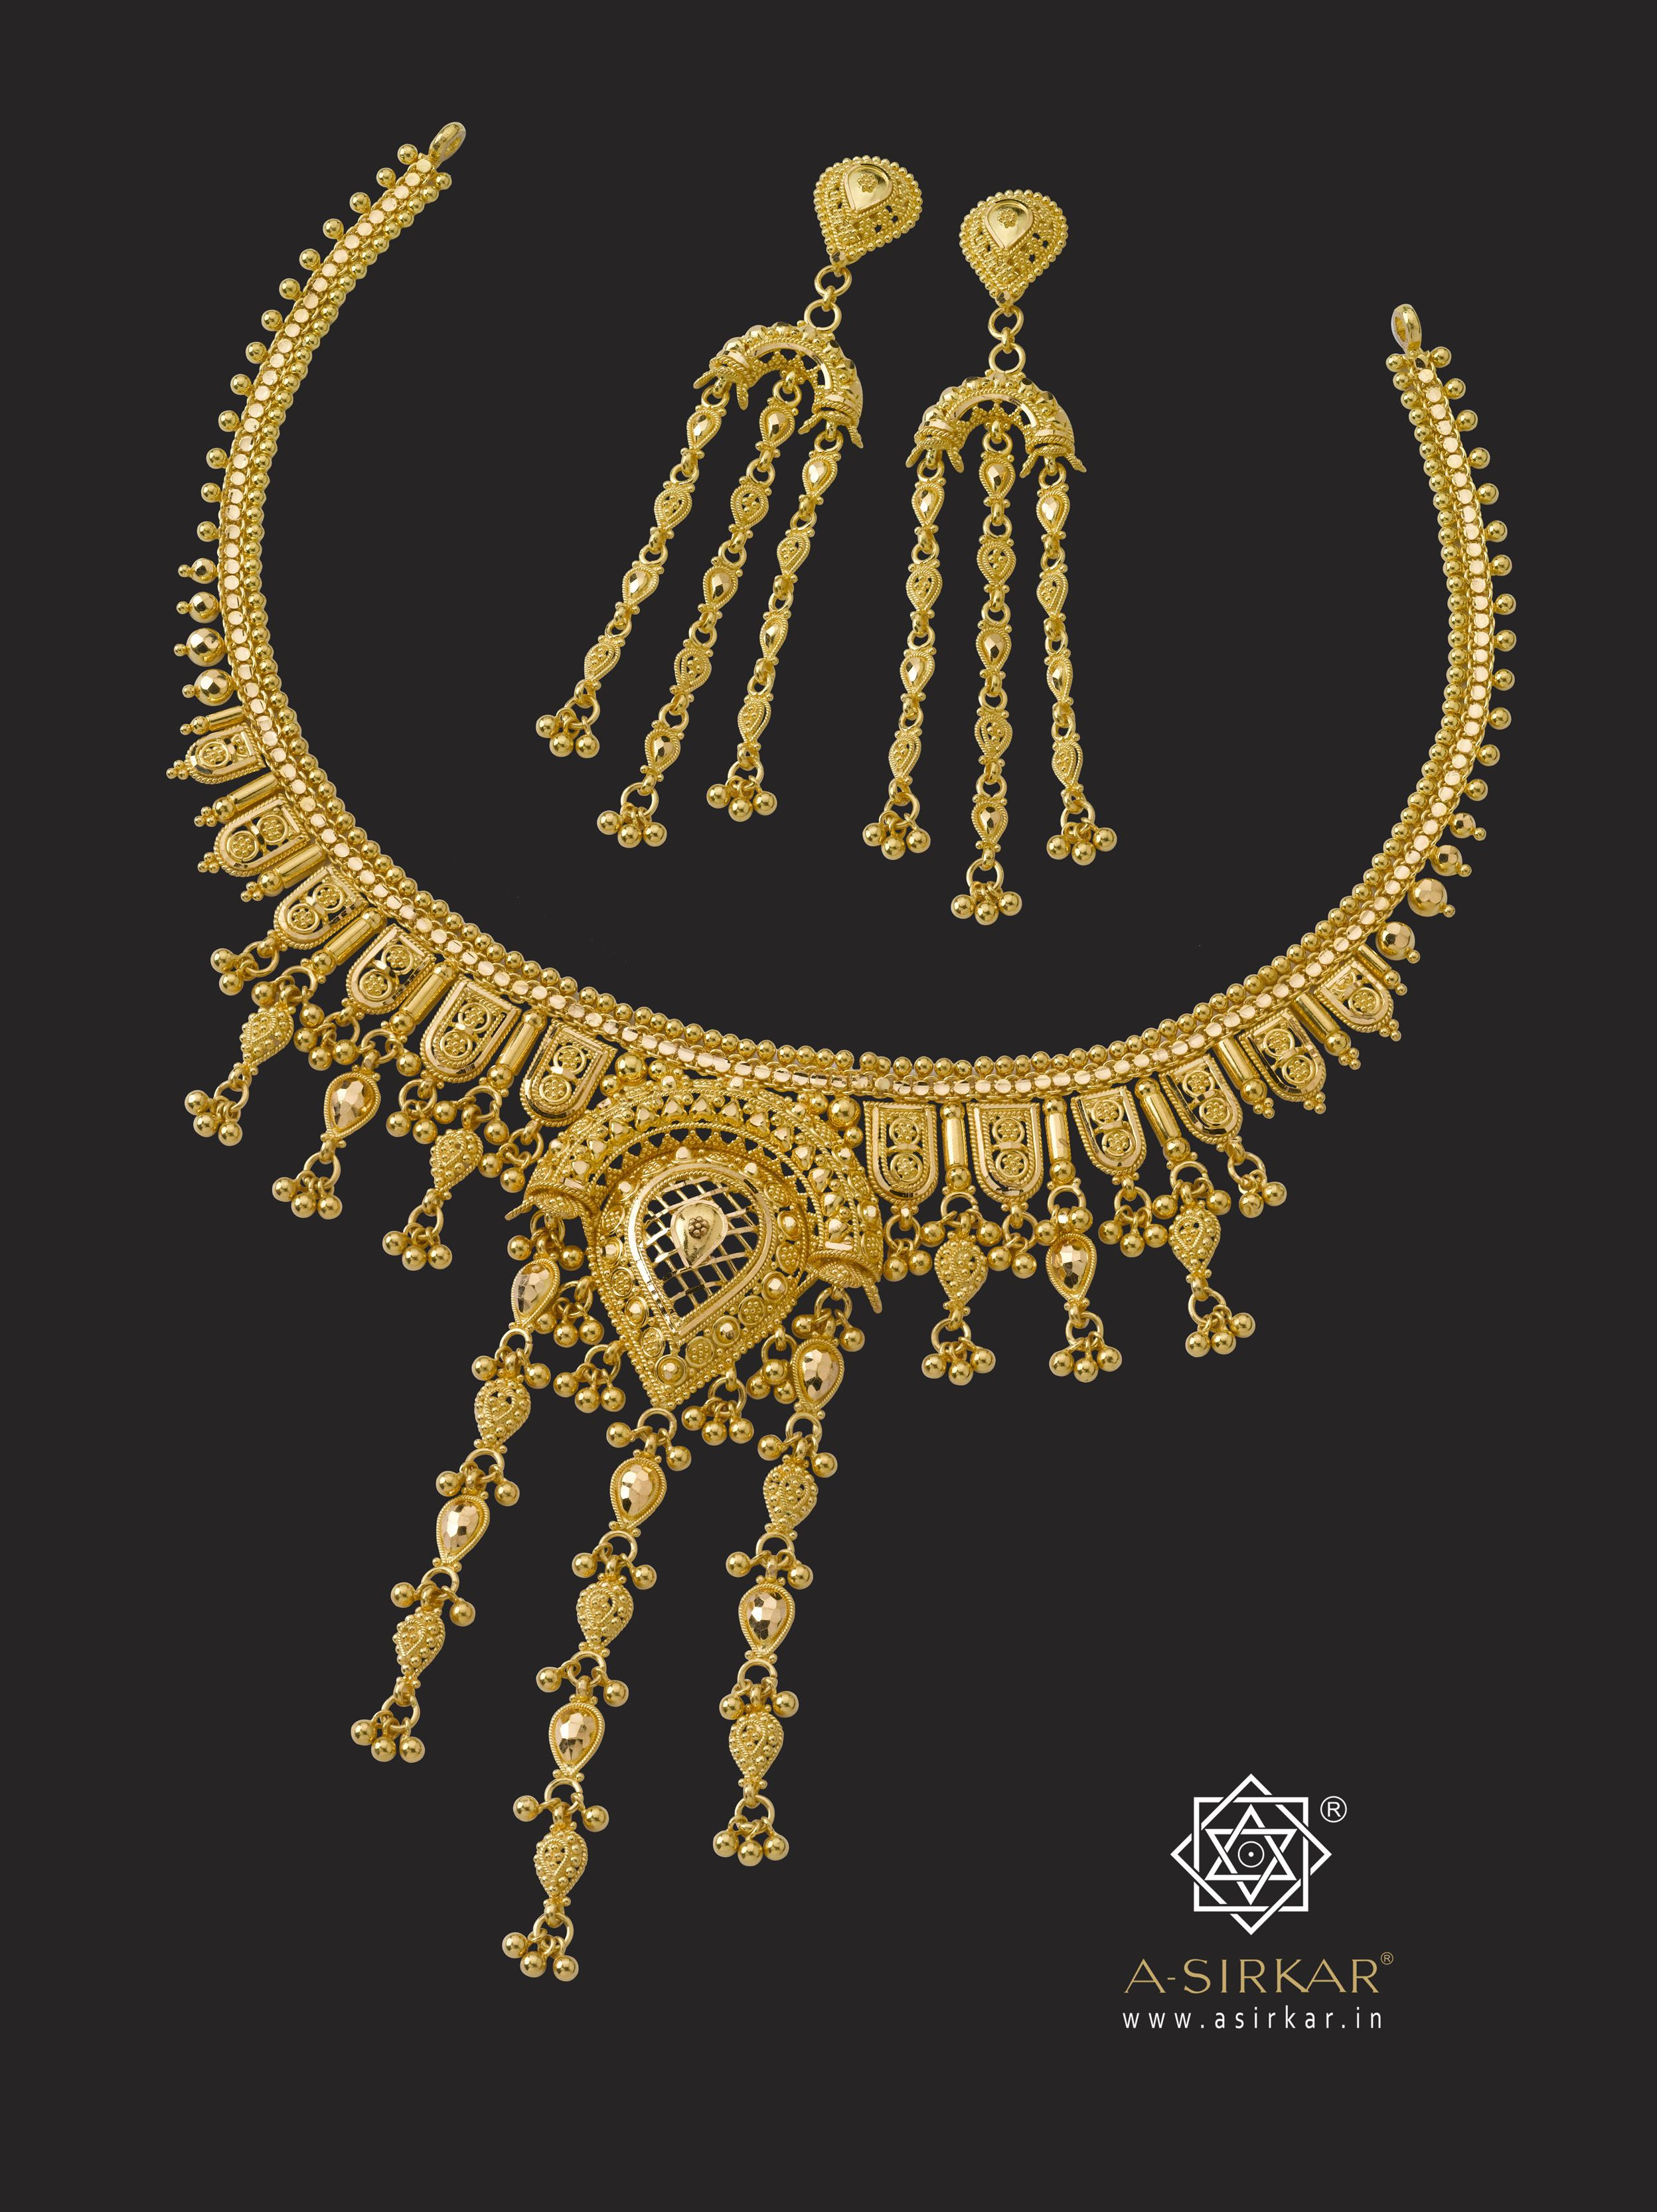 Tilak Necklace Even The Smallest Of Jewels Can Be A Treasured